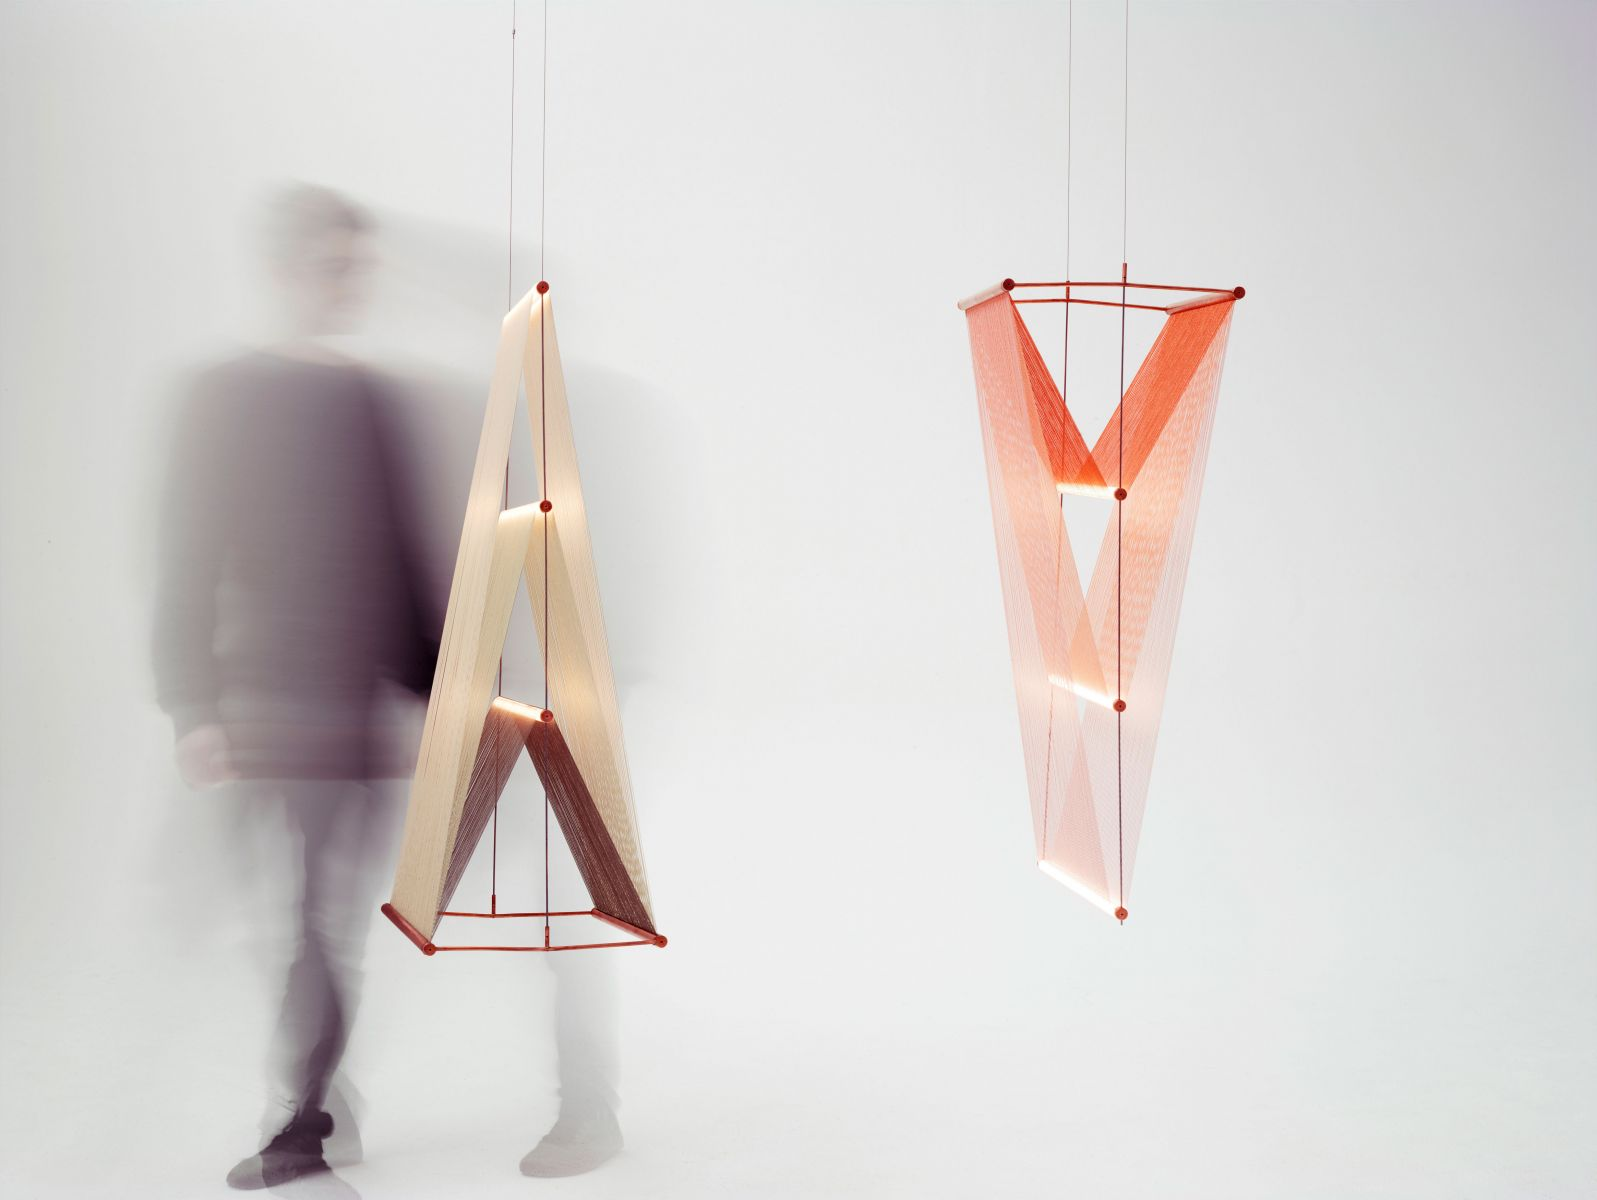 Spun Prism by Umut Yamac. Copper, Mercerised cotton, Stainless steel